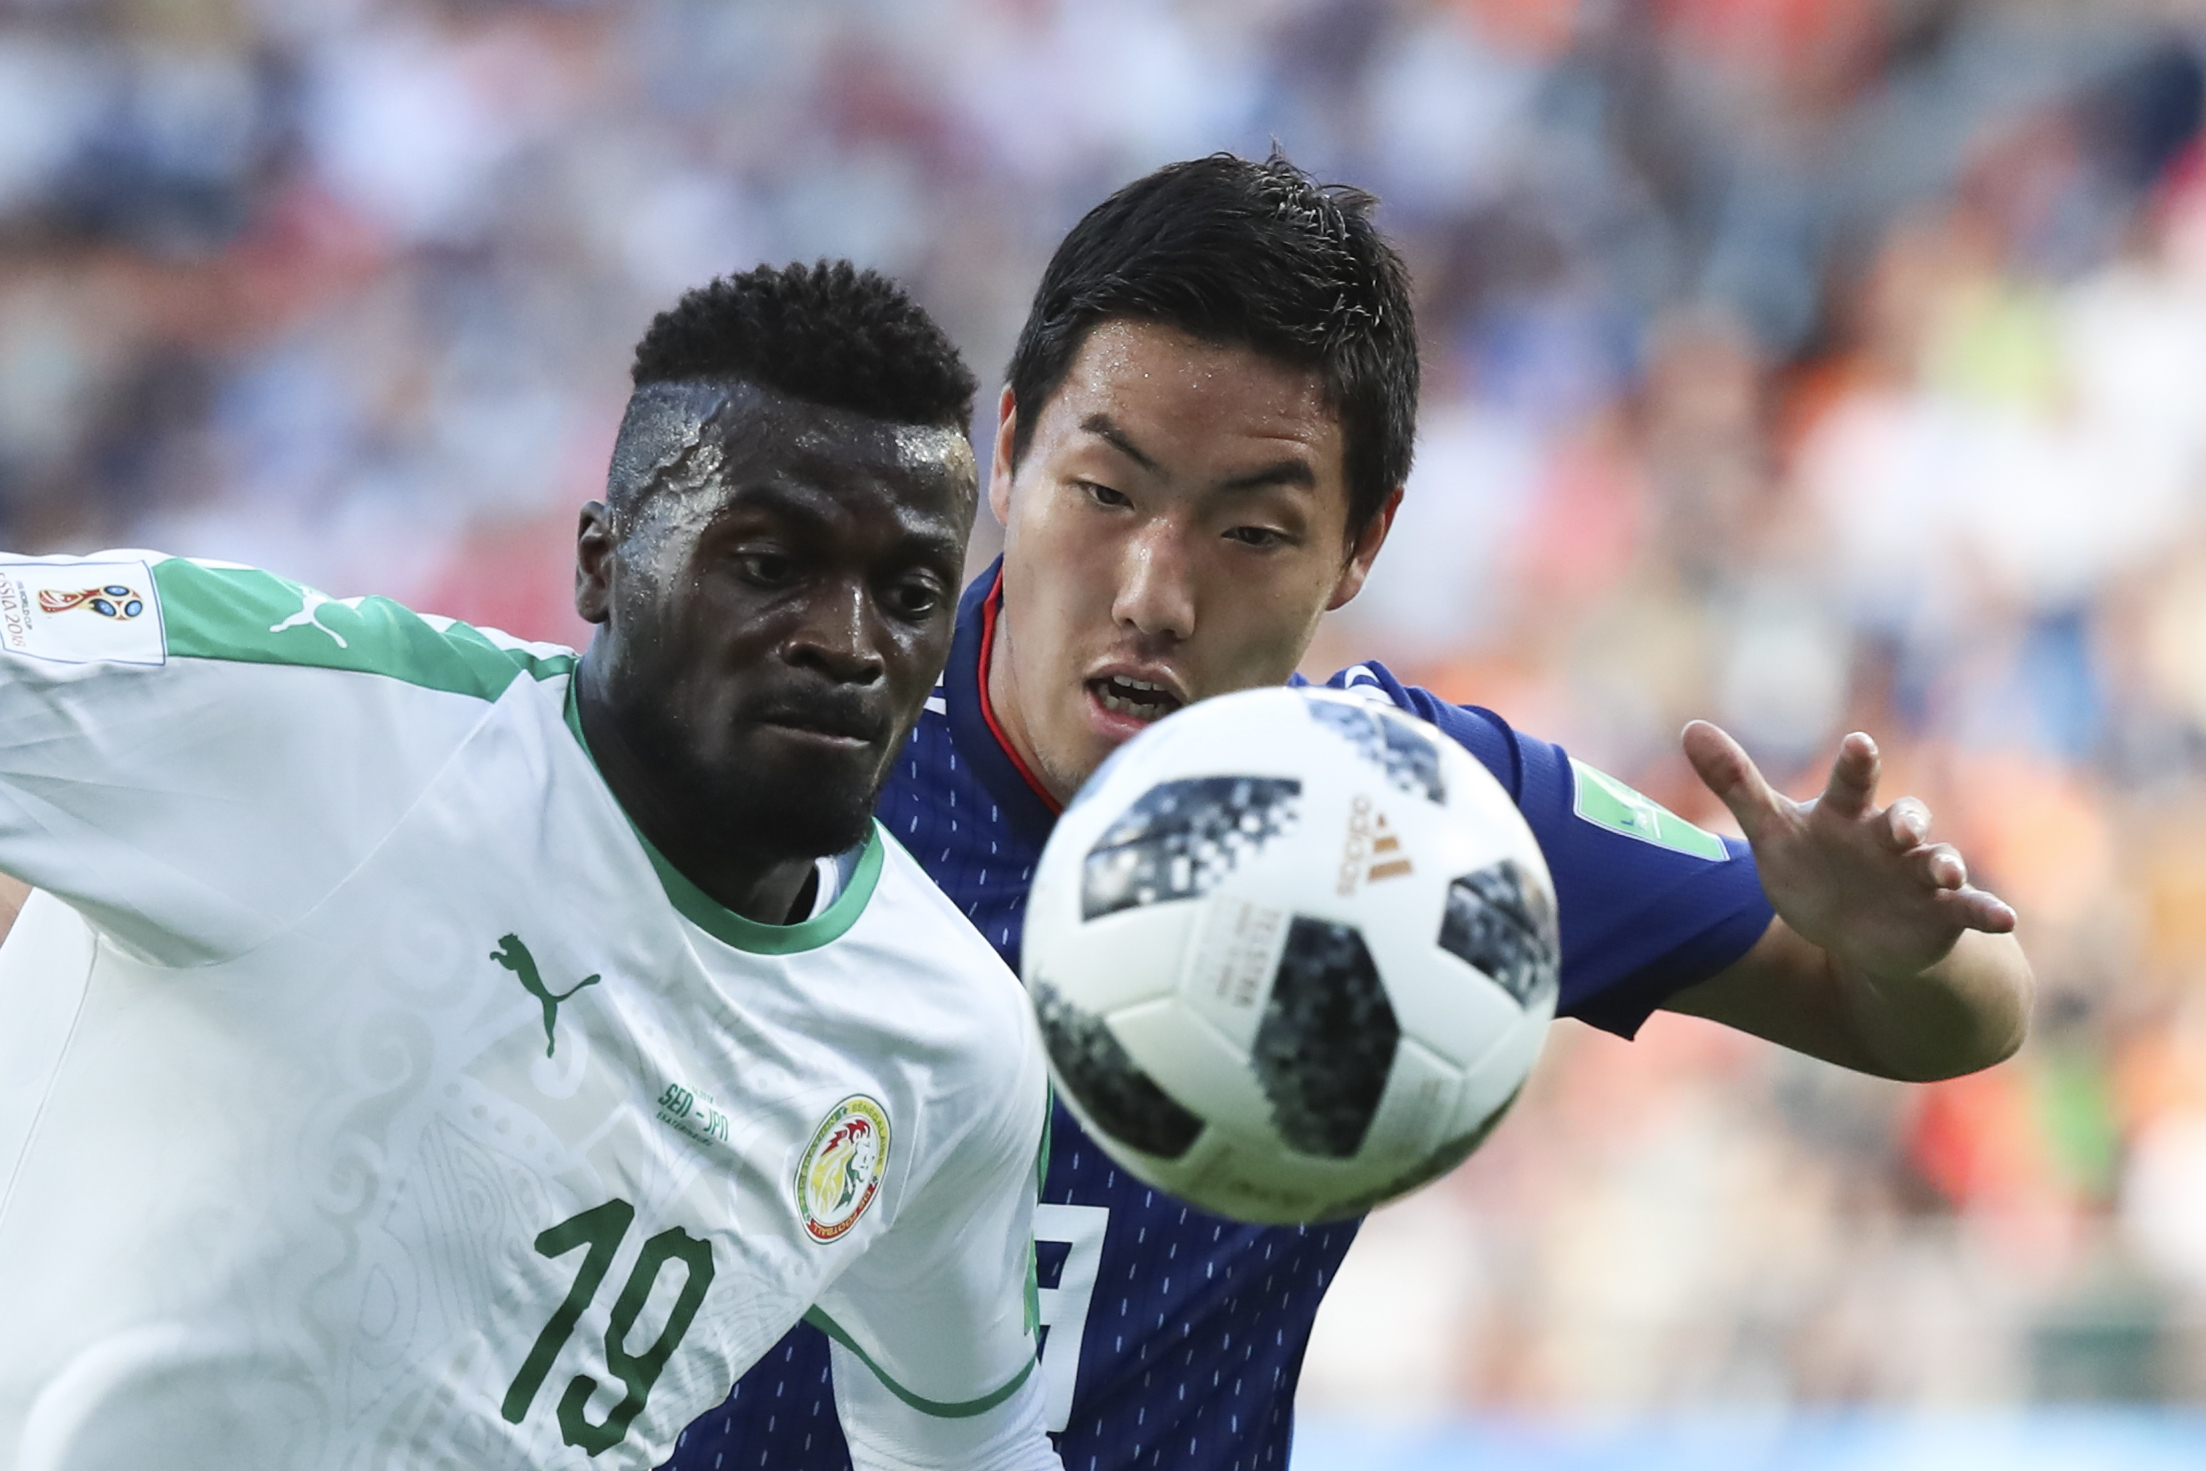 "<div class=""meta image-caption""><div class=""origin-logo origin-image none""><span>none</span></div><span class=""caption-text"">Senegal's Mbaye Niang, left, and Japan's Gen Shoji challenge for the ball during the group H match at the Yekaterinburg Arena in Yekaterinburg, Russia, Sunday, June 24, 2018. (Eugene Hoshiko/AP Photo)</span></div>"